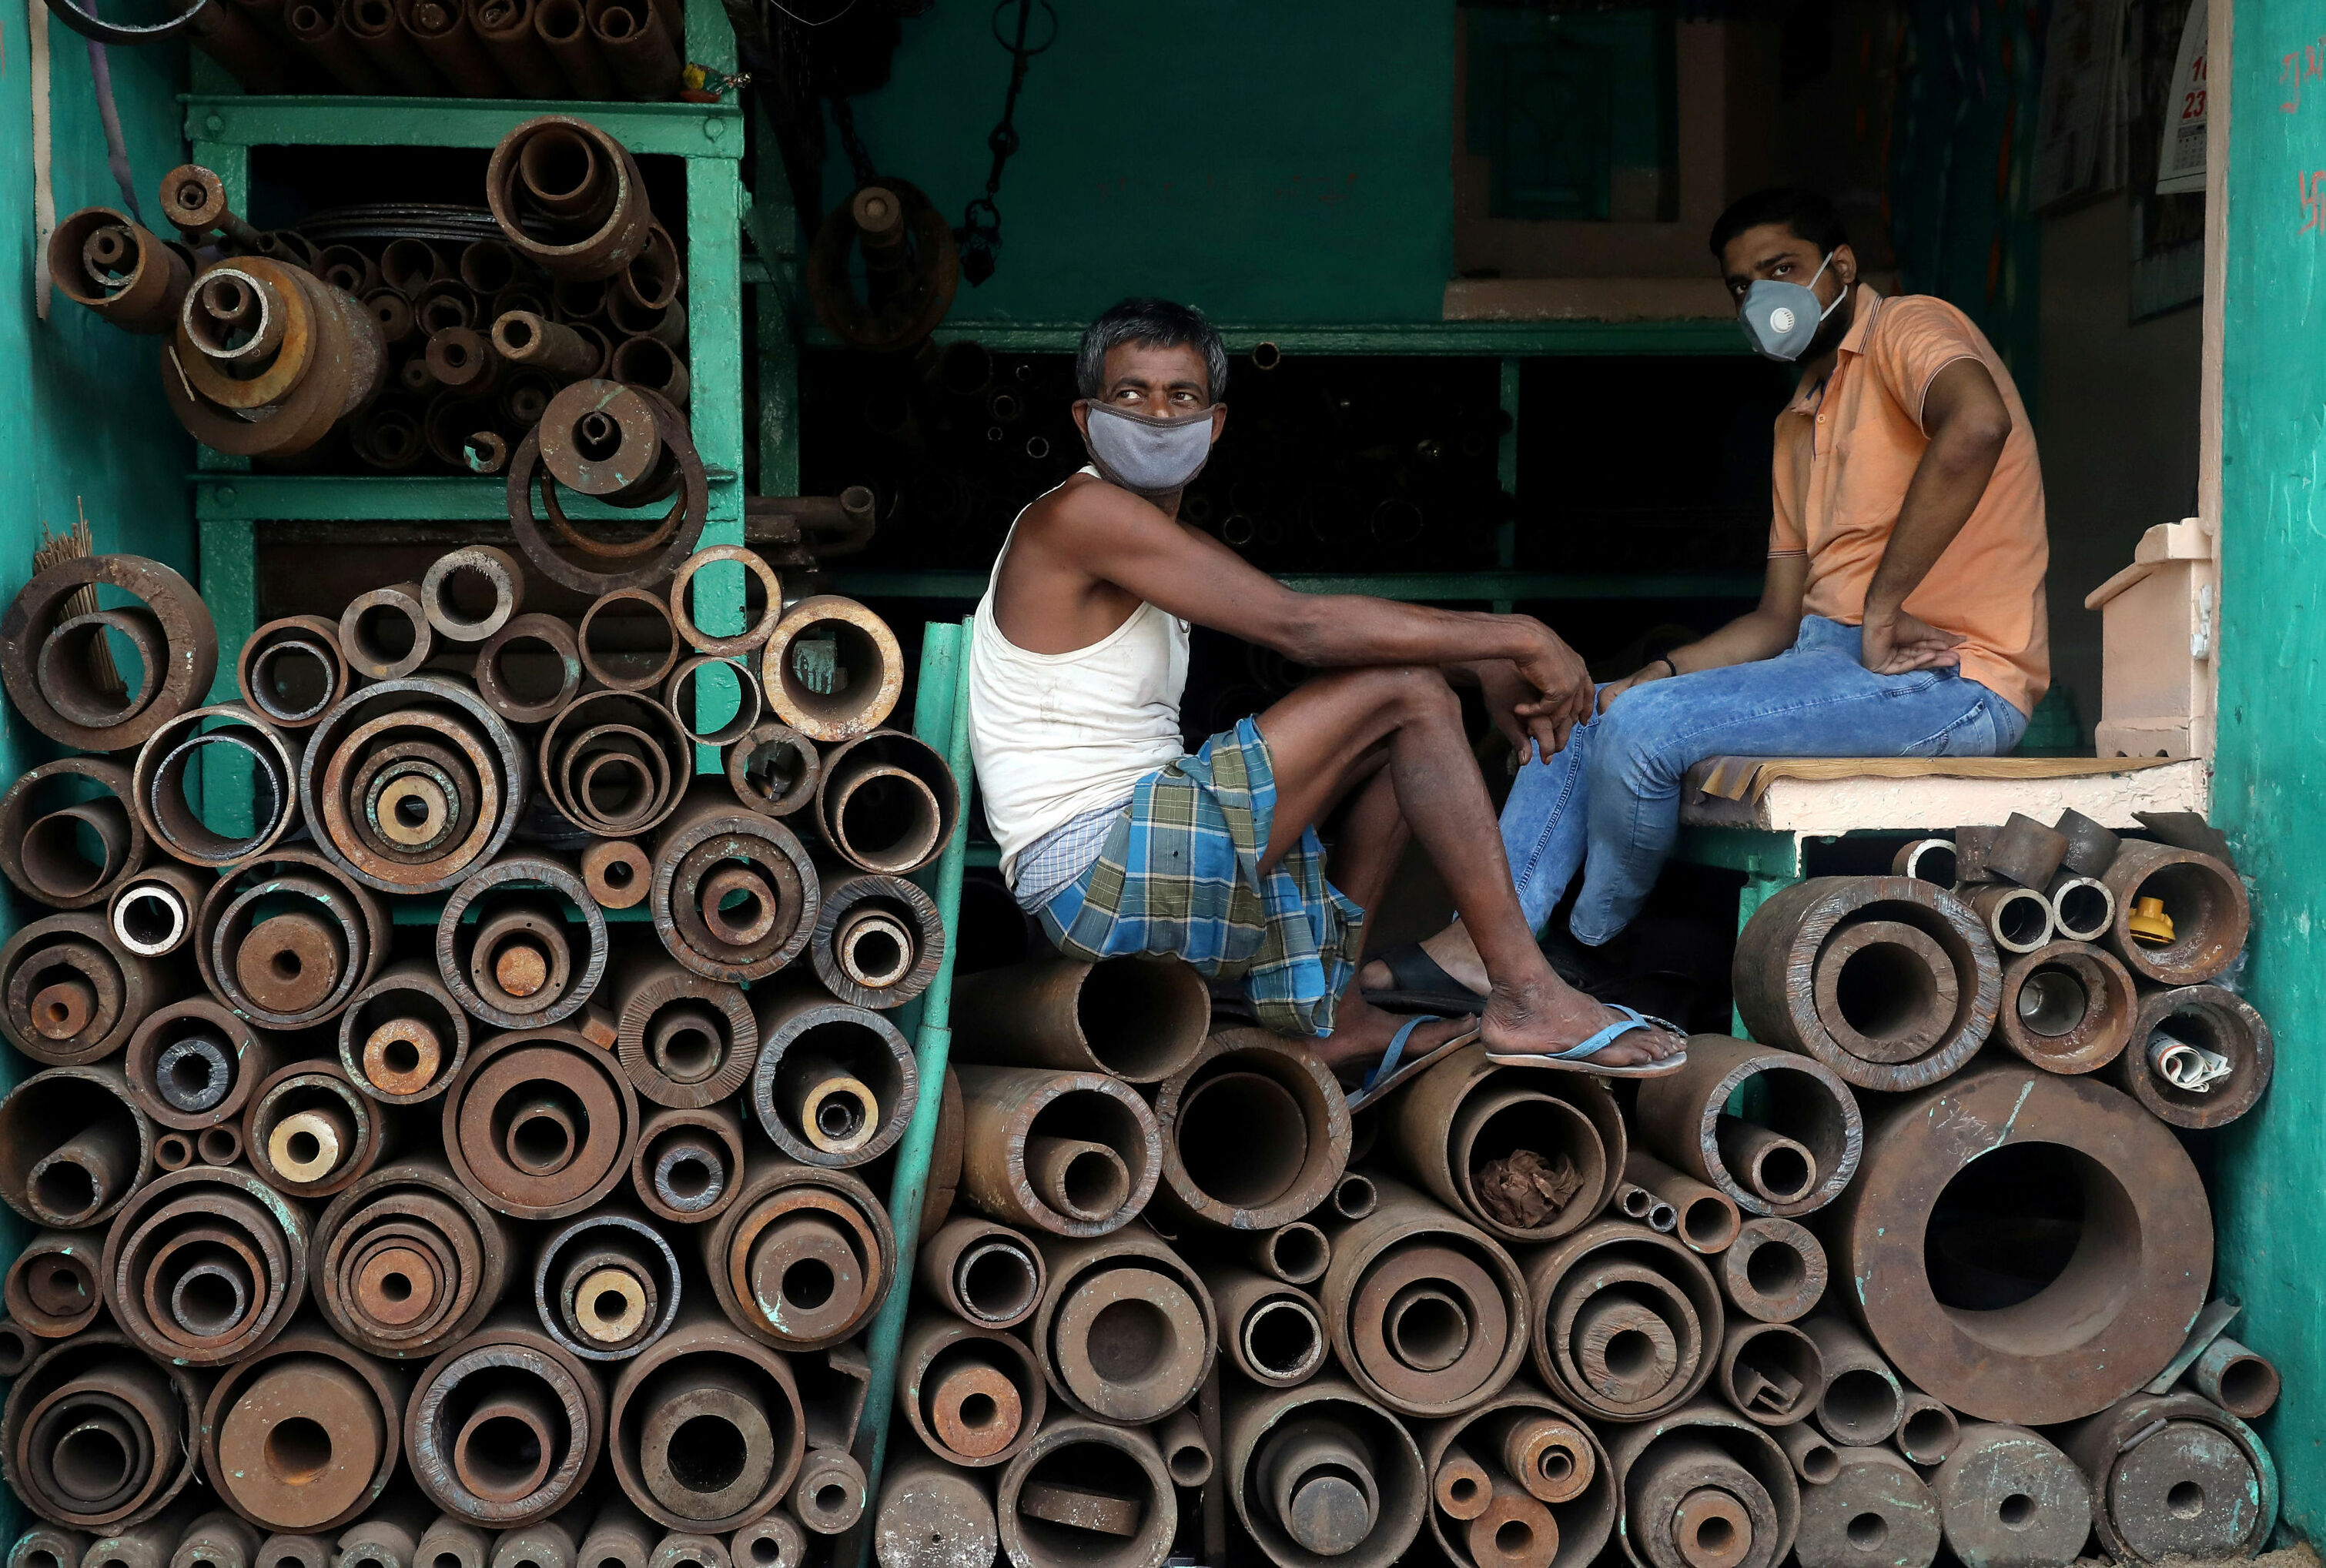 Workers wearing protective face masks sit inside a shop selling iron pipes at a wholesale iron market, after authorities eased lockdown restrictions that were imposed to slow the spread of the coronavirus disease (COVID-19), in Kolkata, India, June 15, 2020. Credit: Reuters